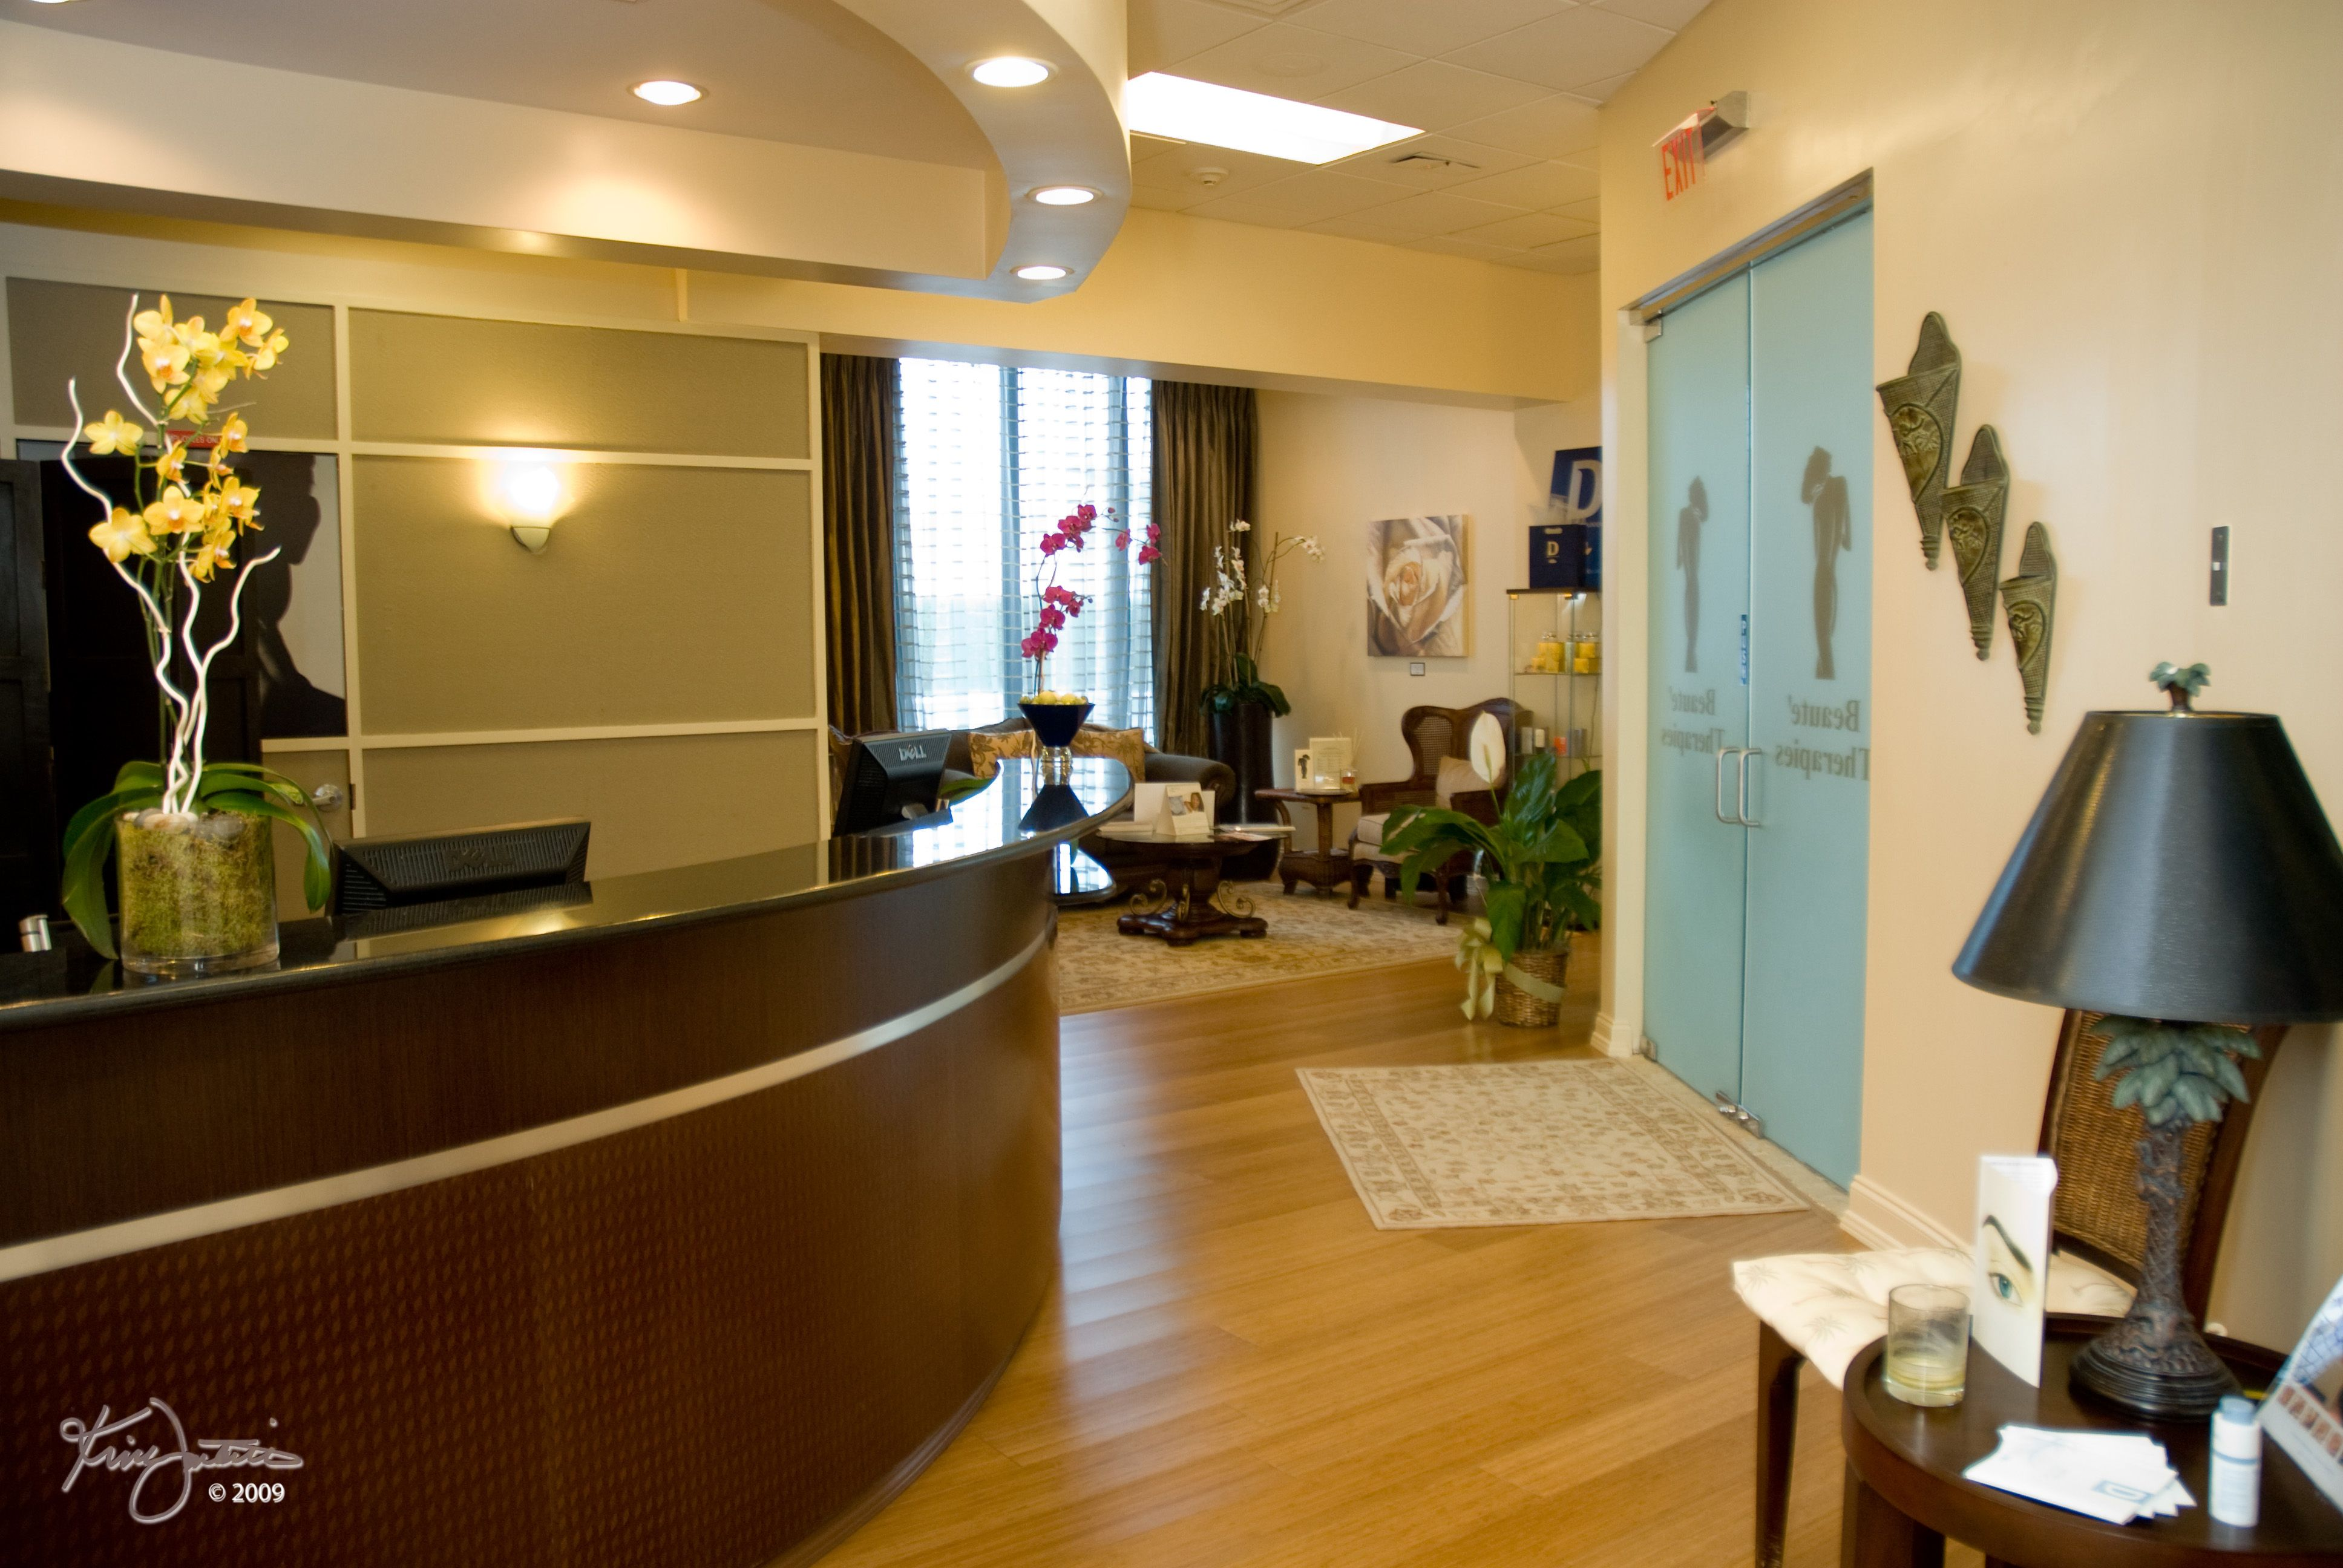 Doctors office interior commercial photography pinterest for Interior design doctor s office